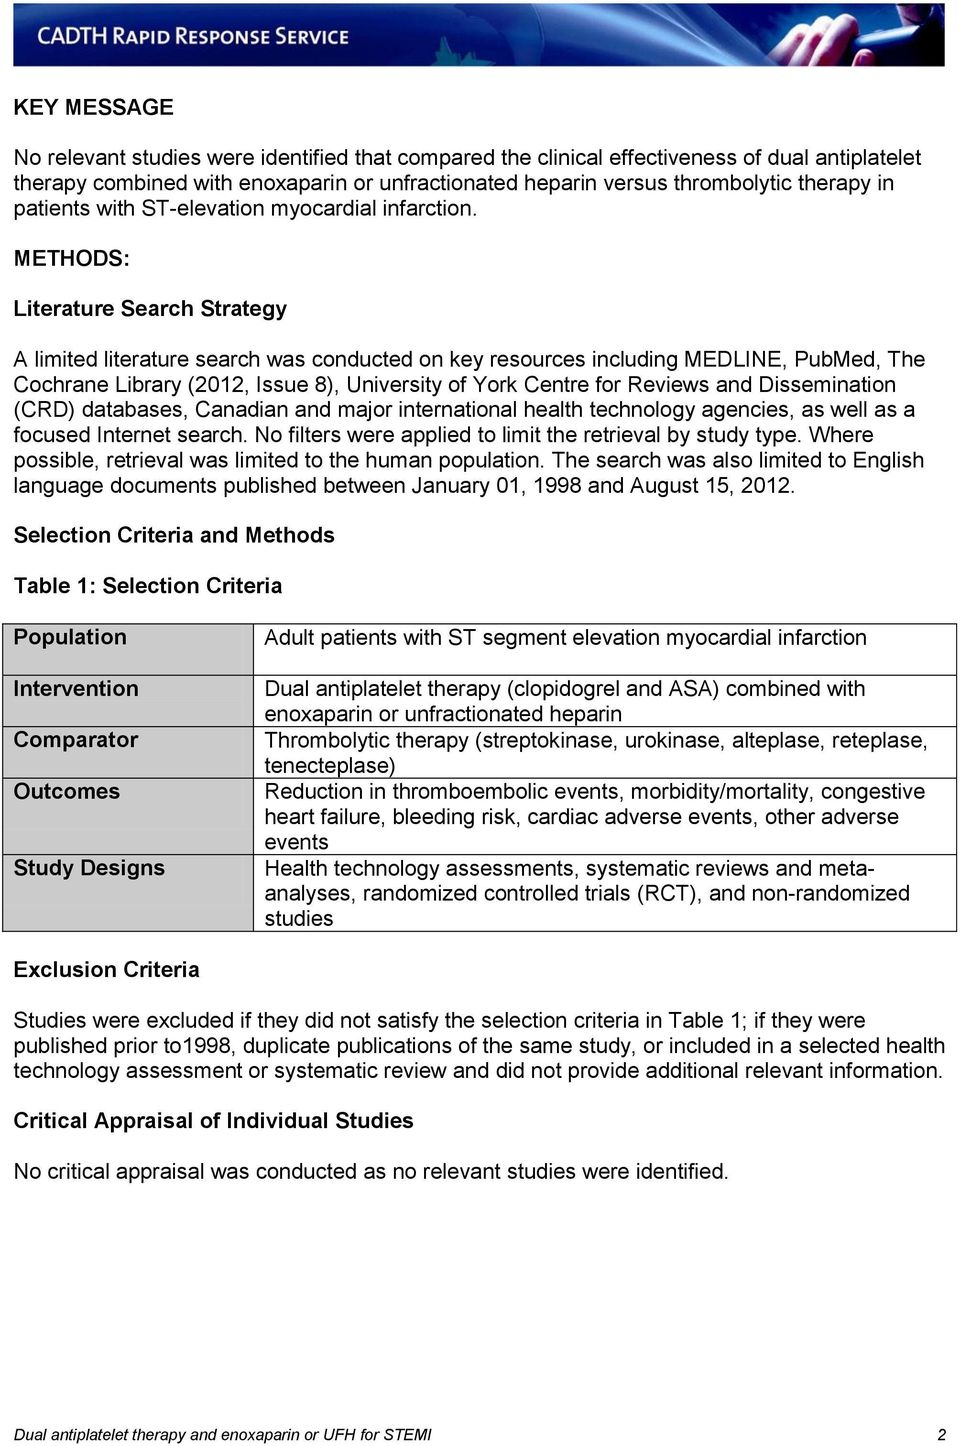 METHODS: Literature Search Strategy A limited literature search was conducted on key resources including MEDLINE, PubMed, The Cochrane Library (2012, Issue 8), University of York Centre for Reviews